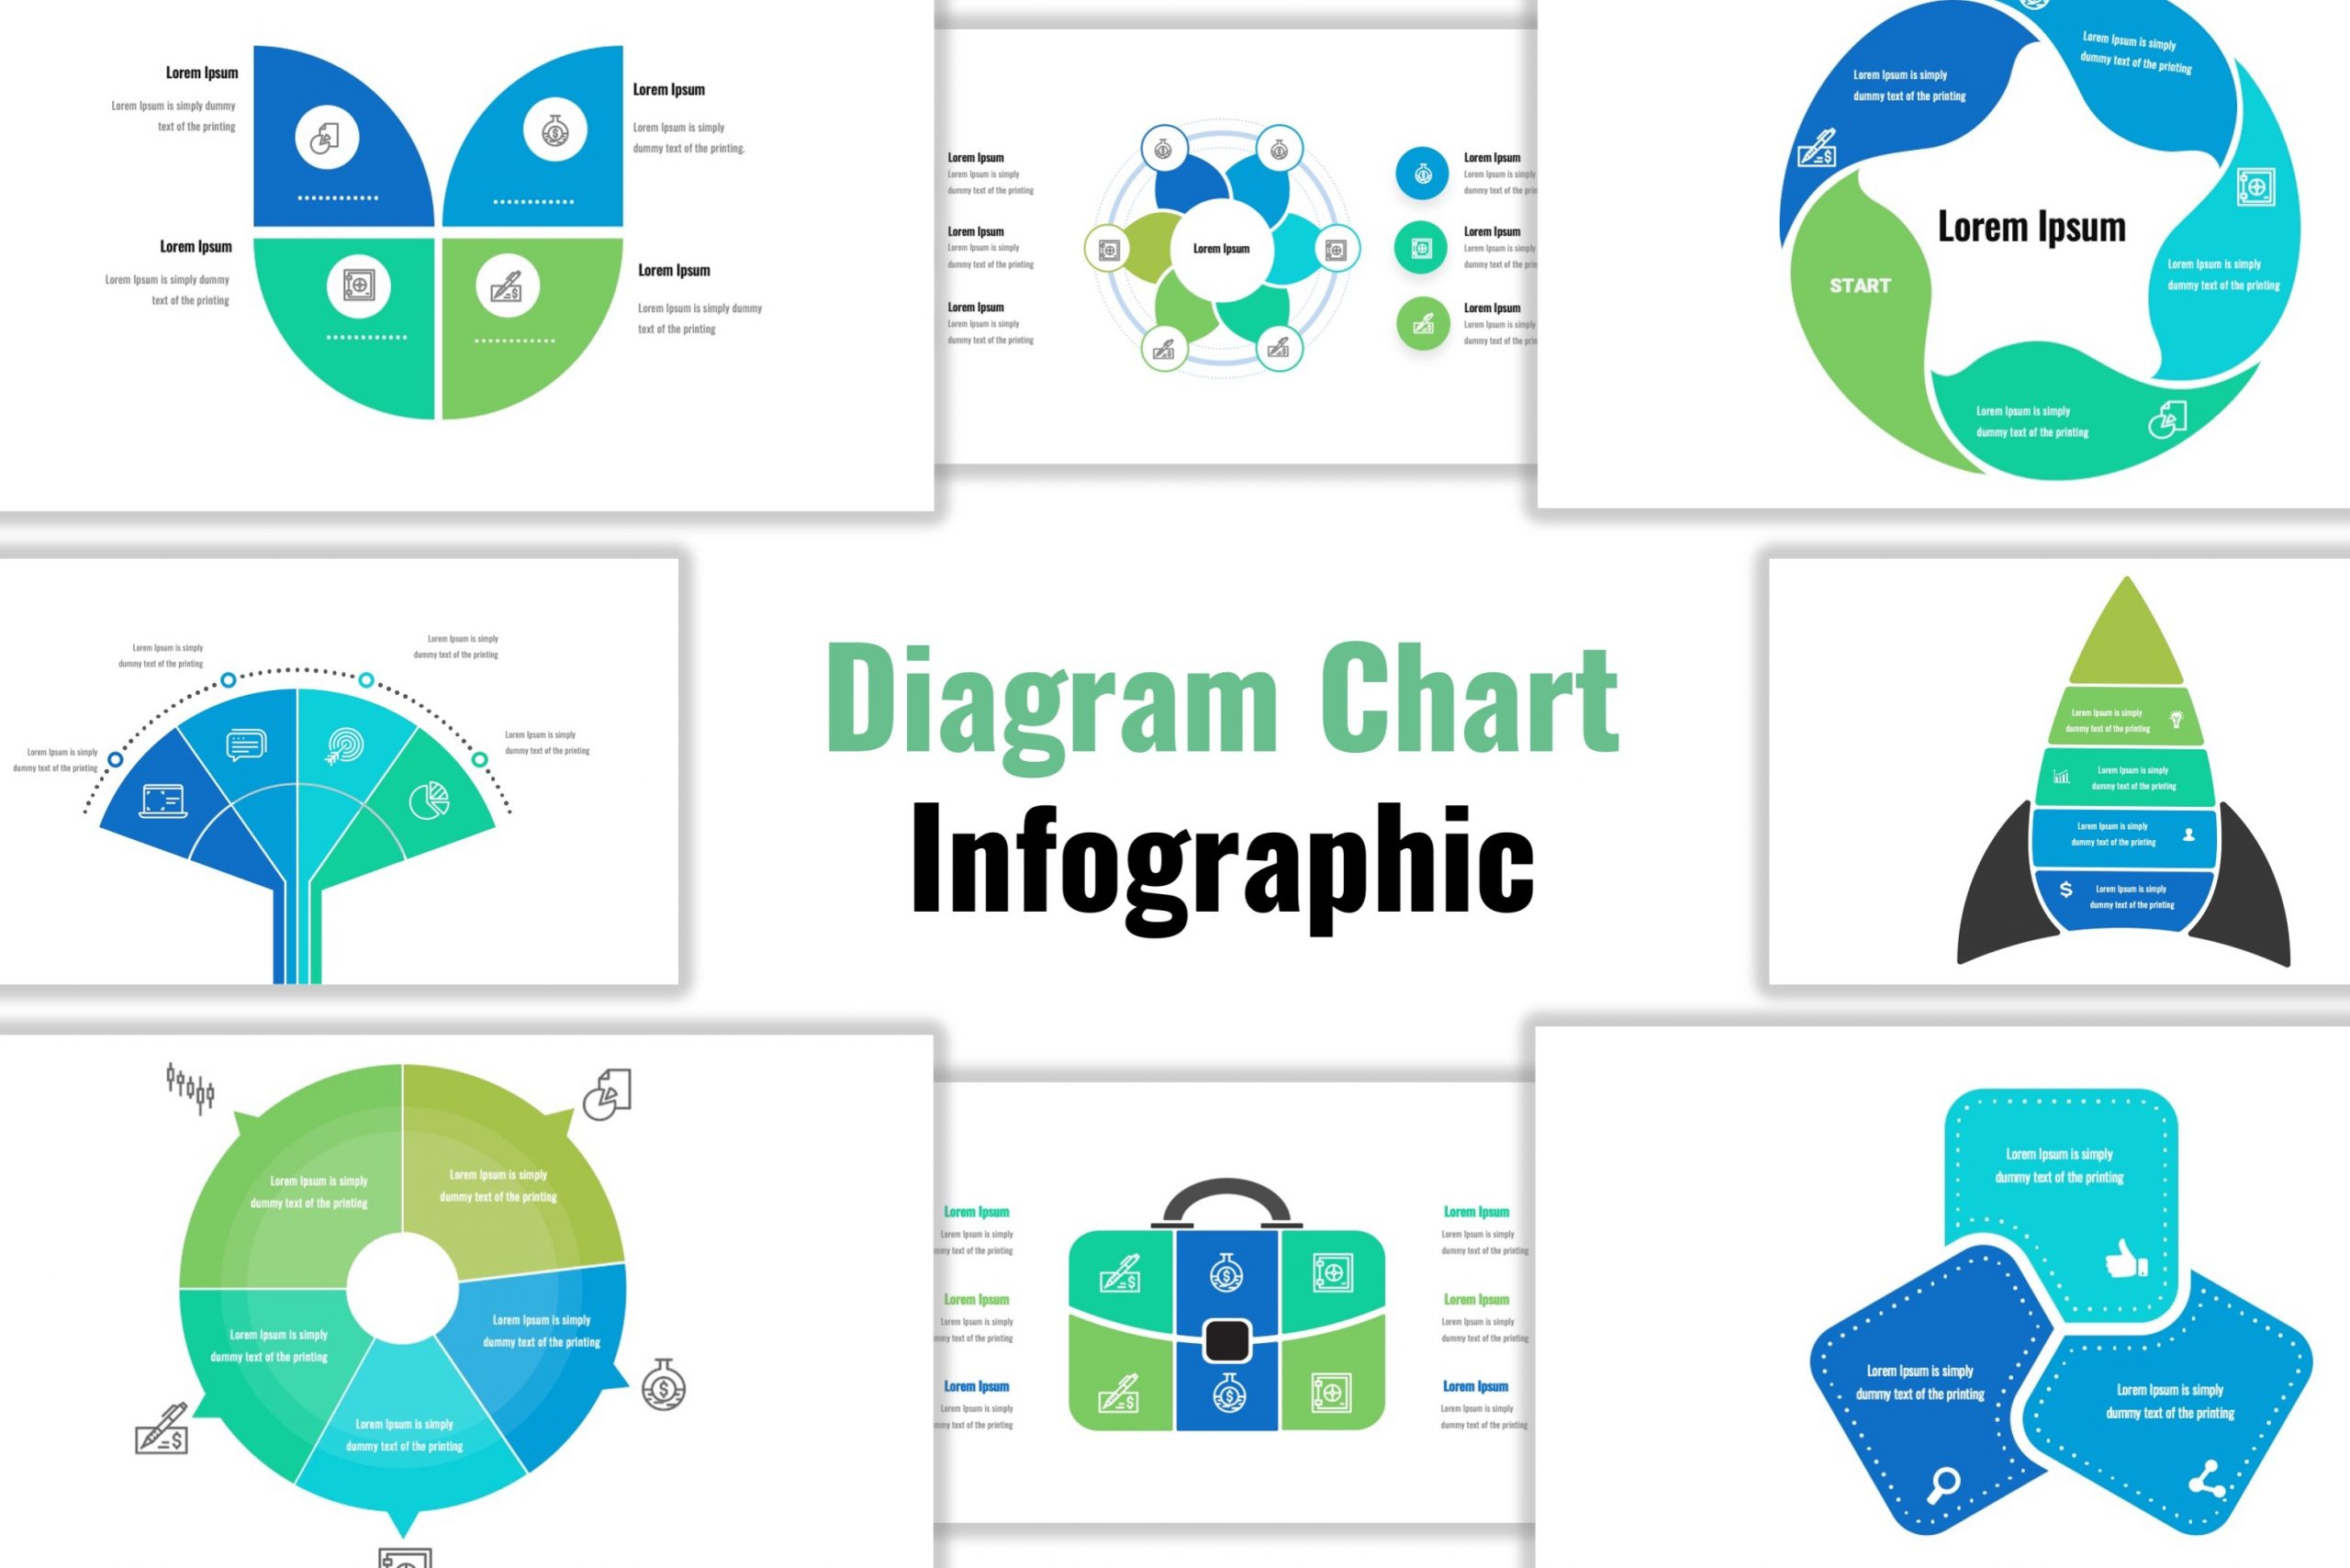 infographic template of Diagram Chart